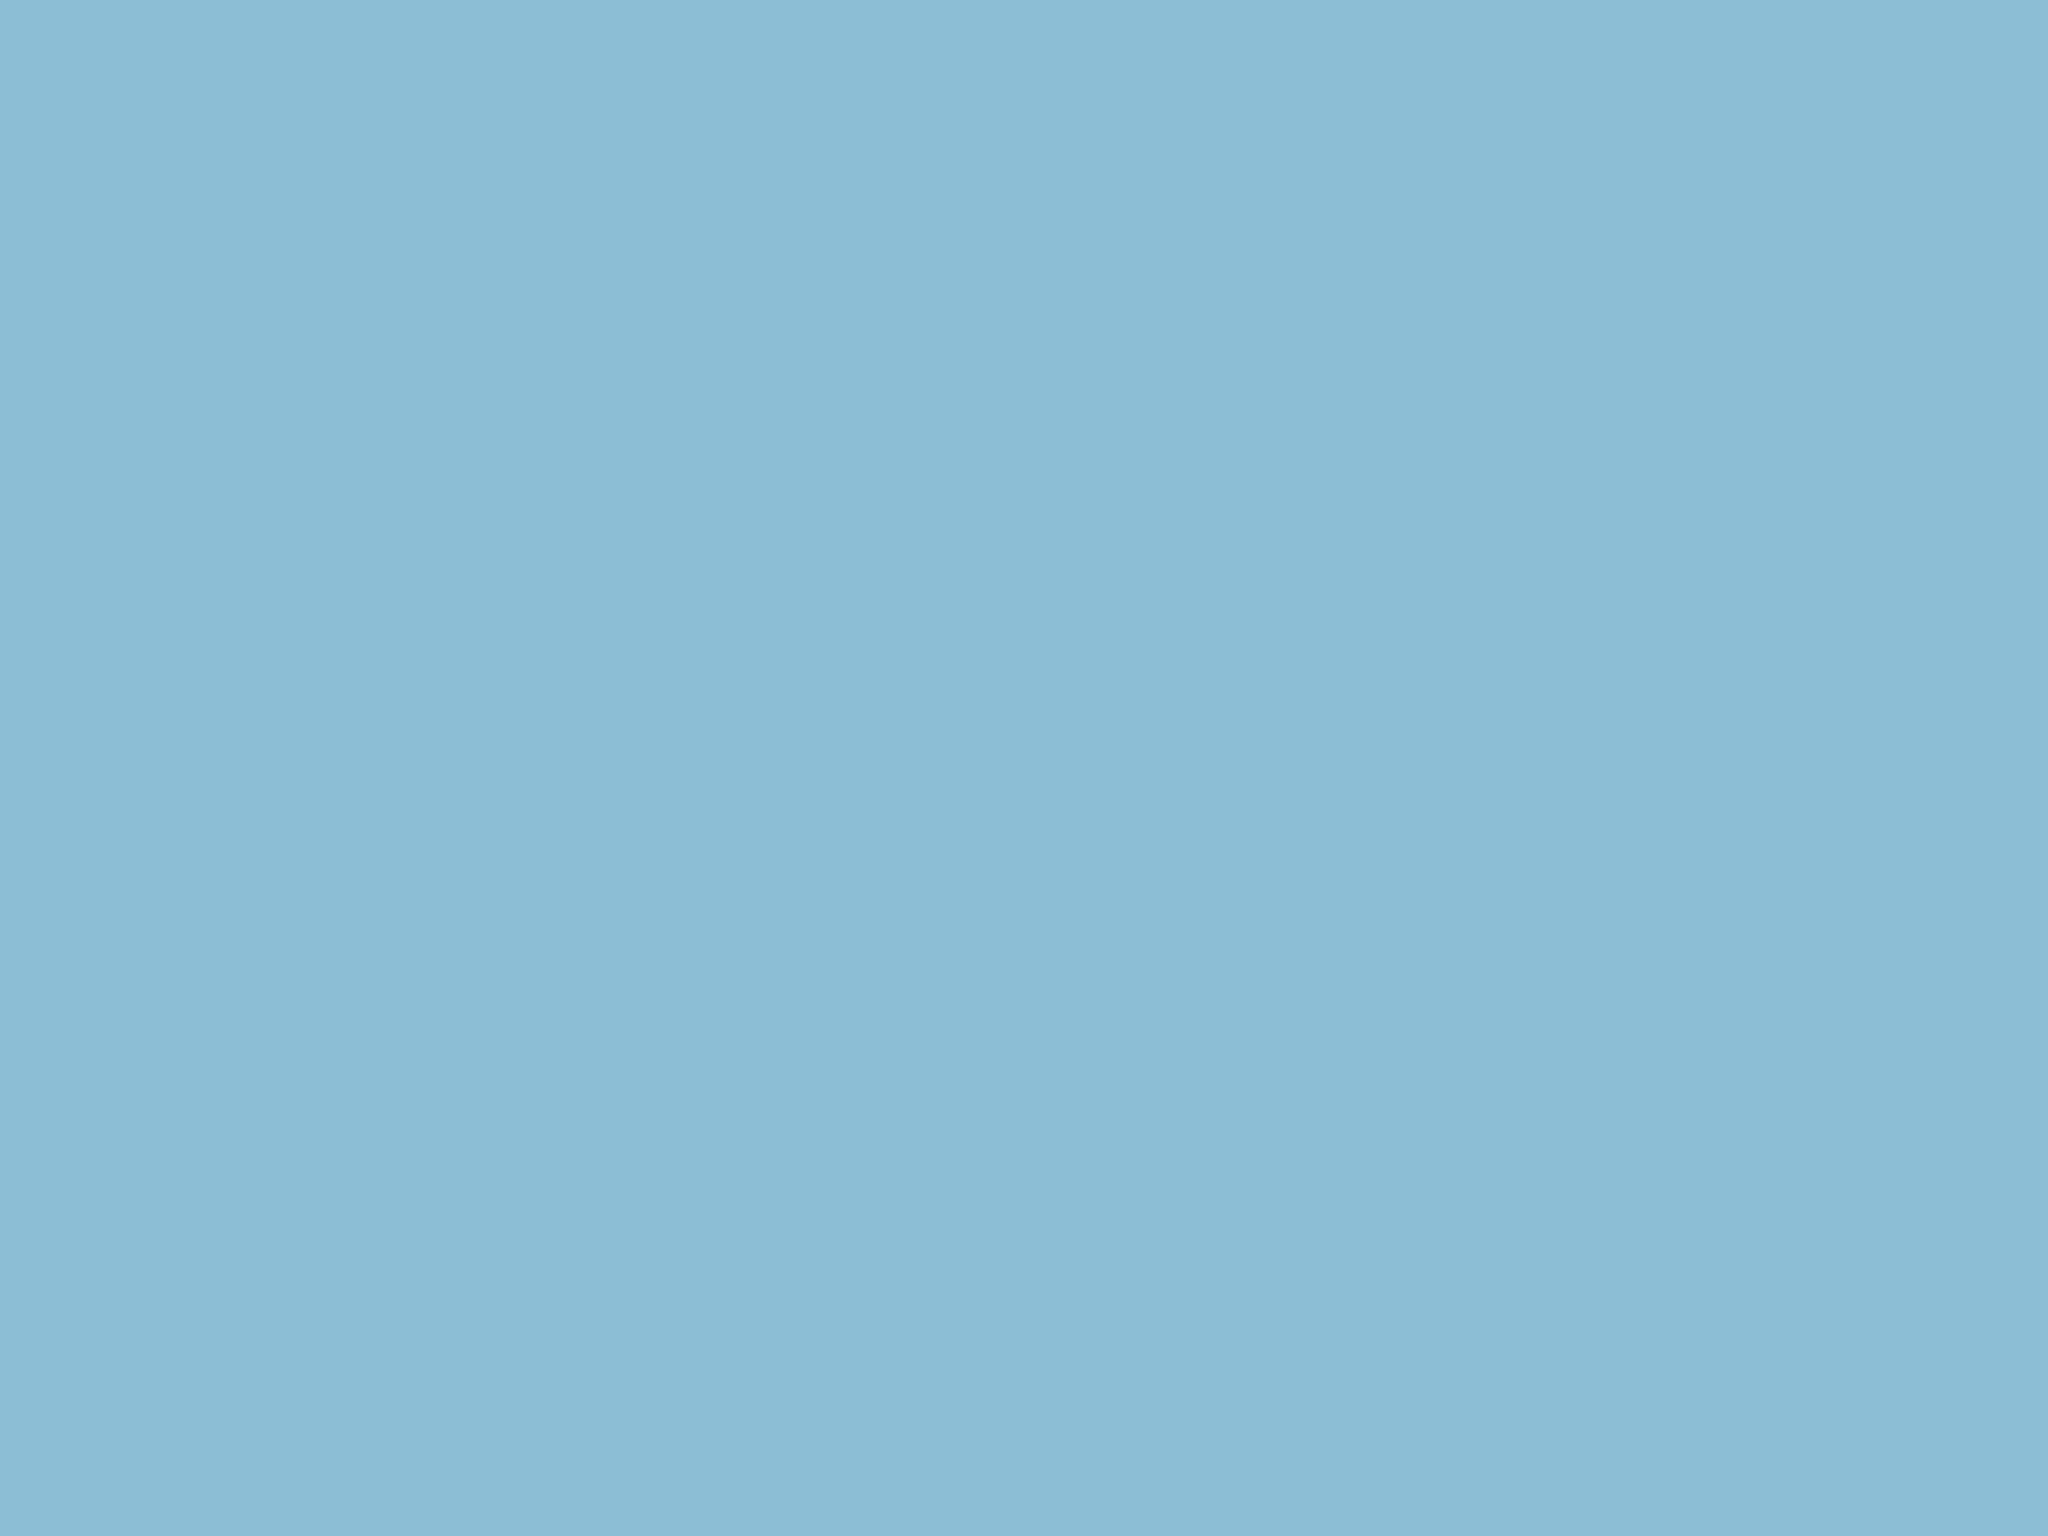 2048x1536 Dark Sky Blue Solid Color Background